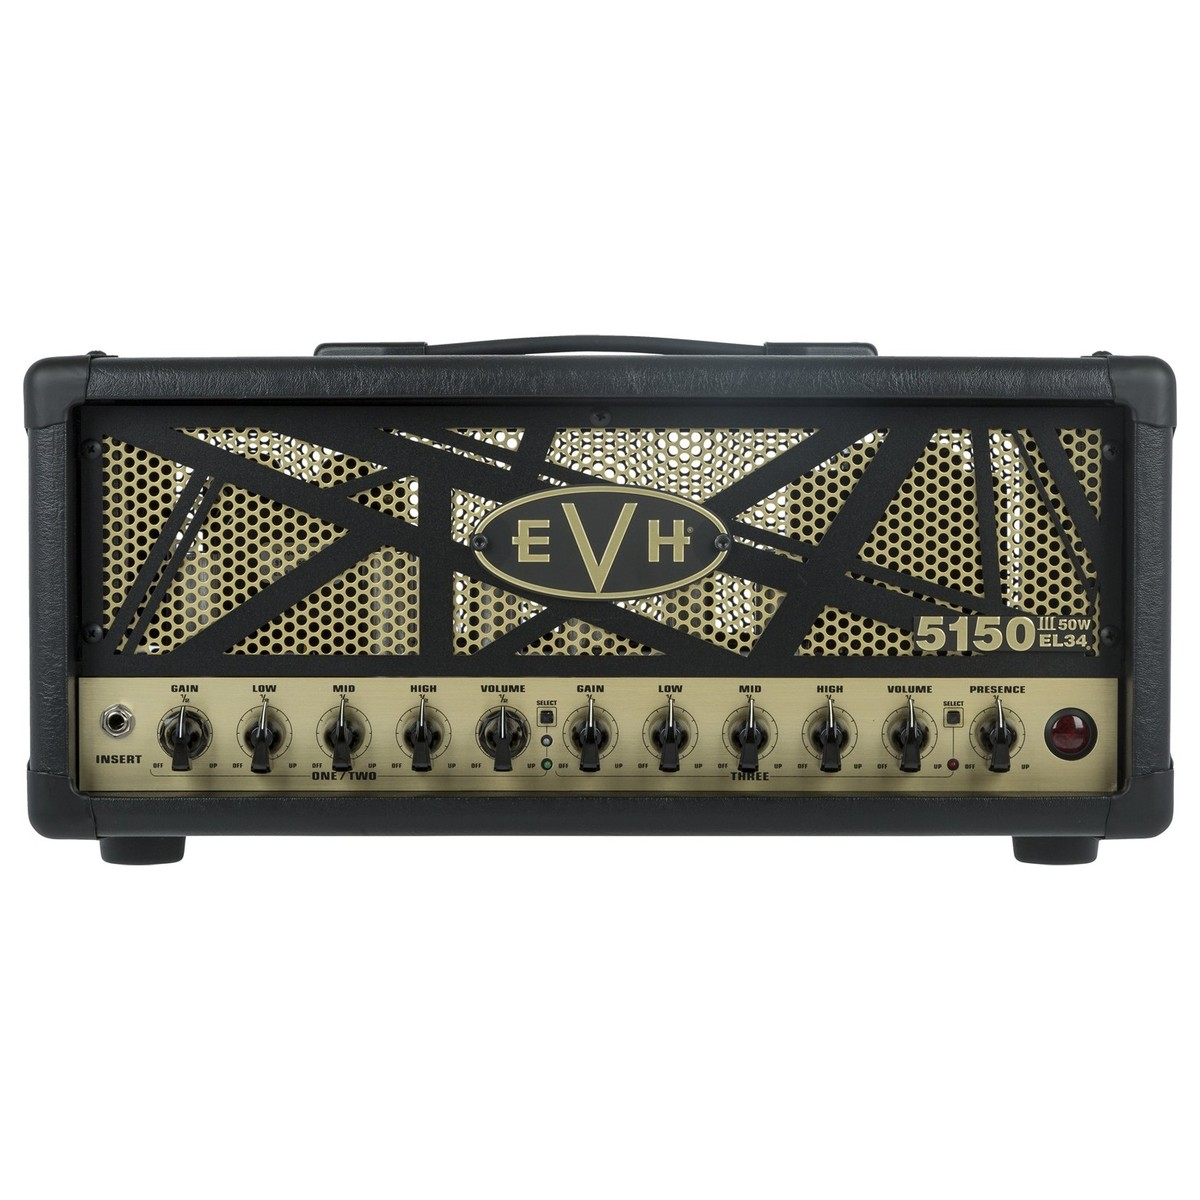 EVH Four Button Footswitch